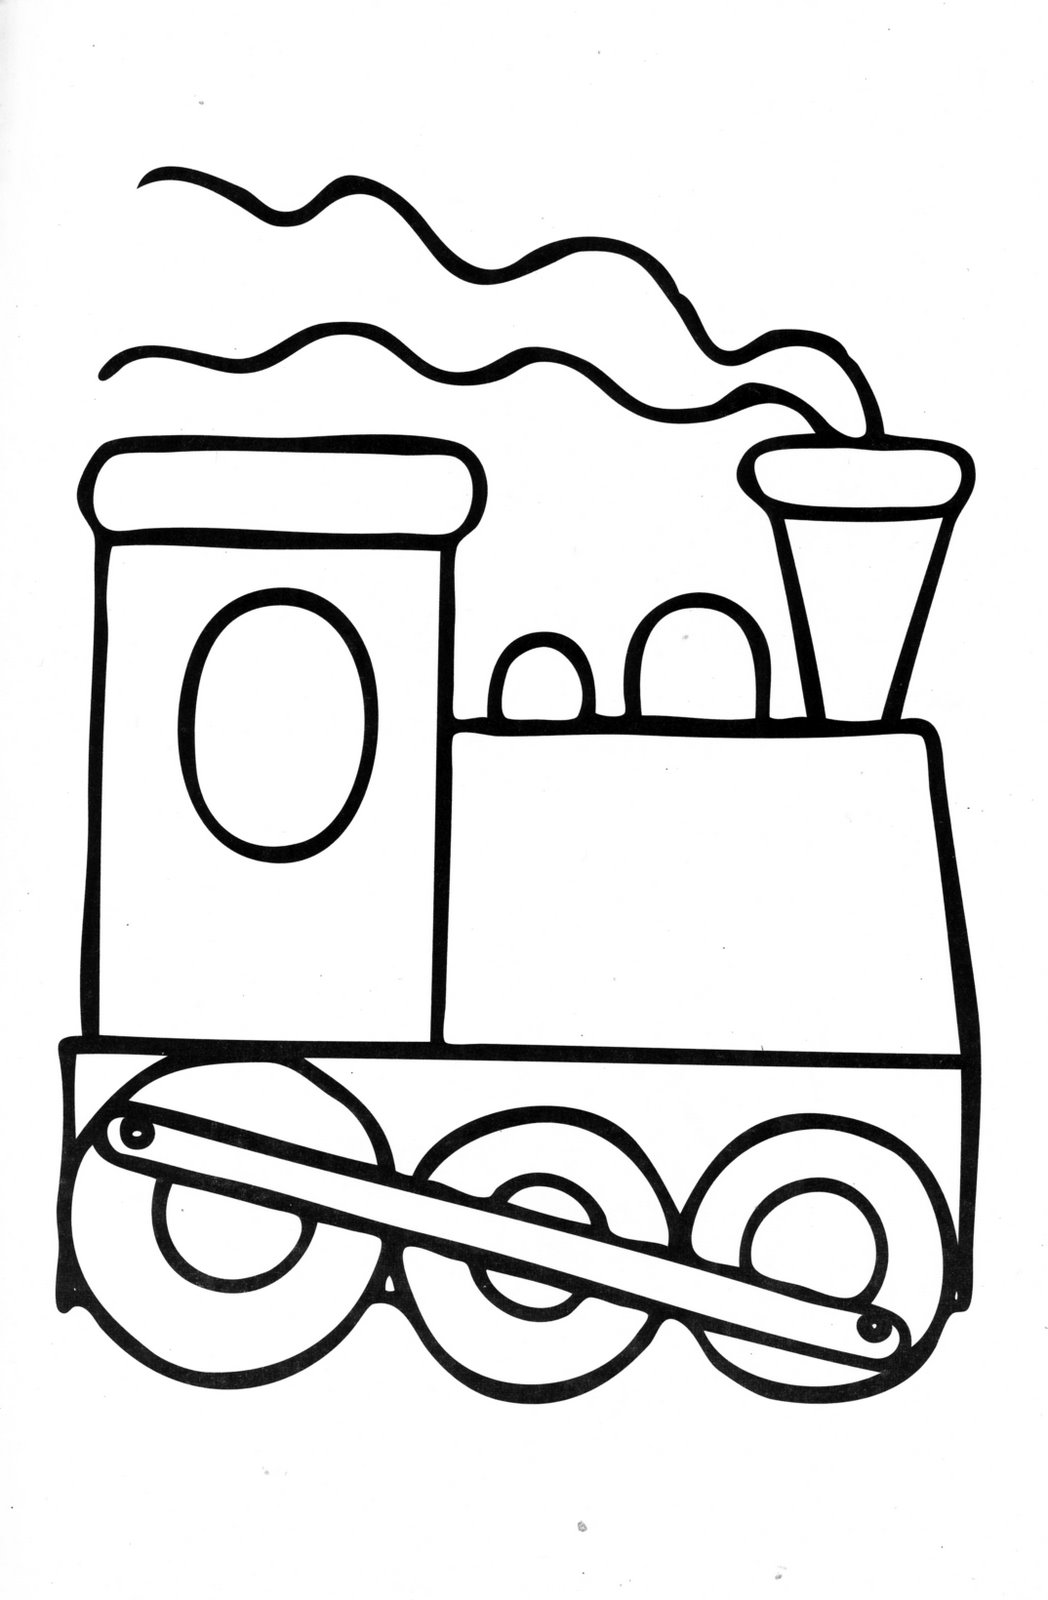 Train coloring pages - Train 20engine 20coloring 20page